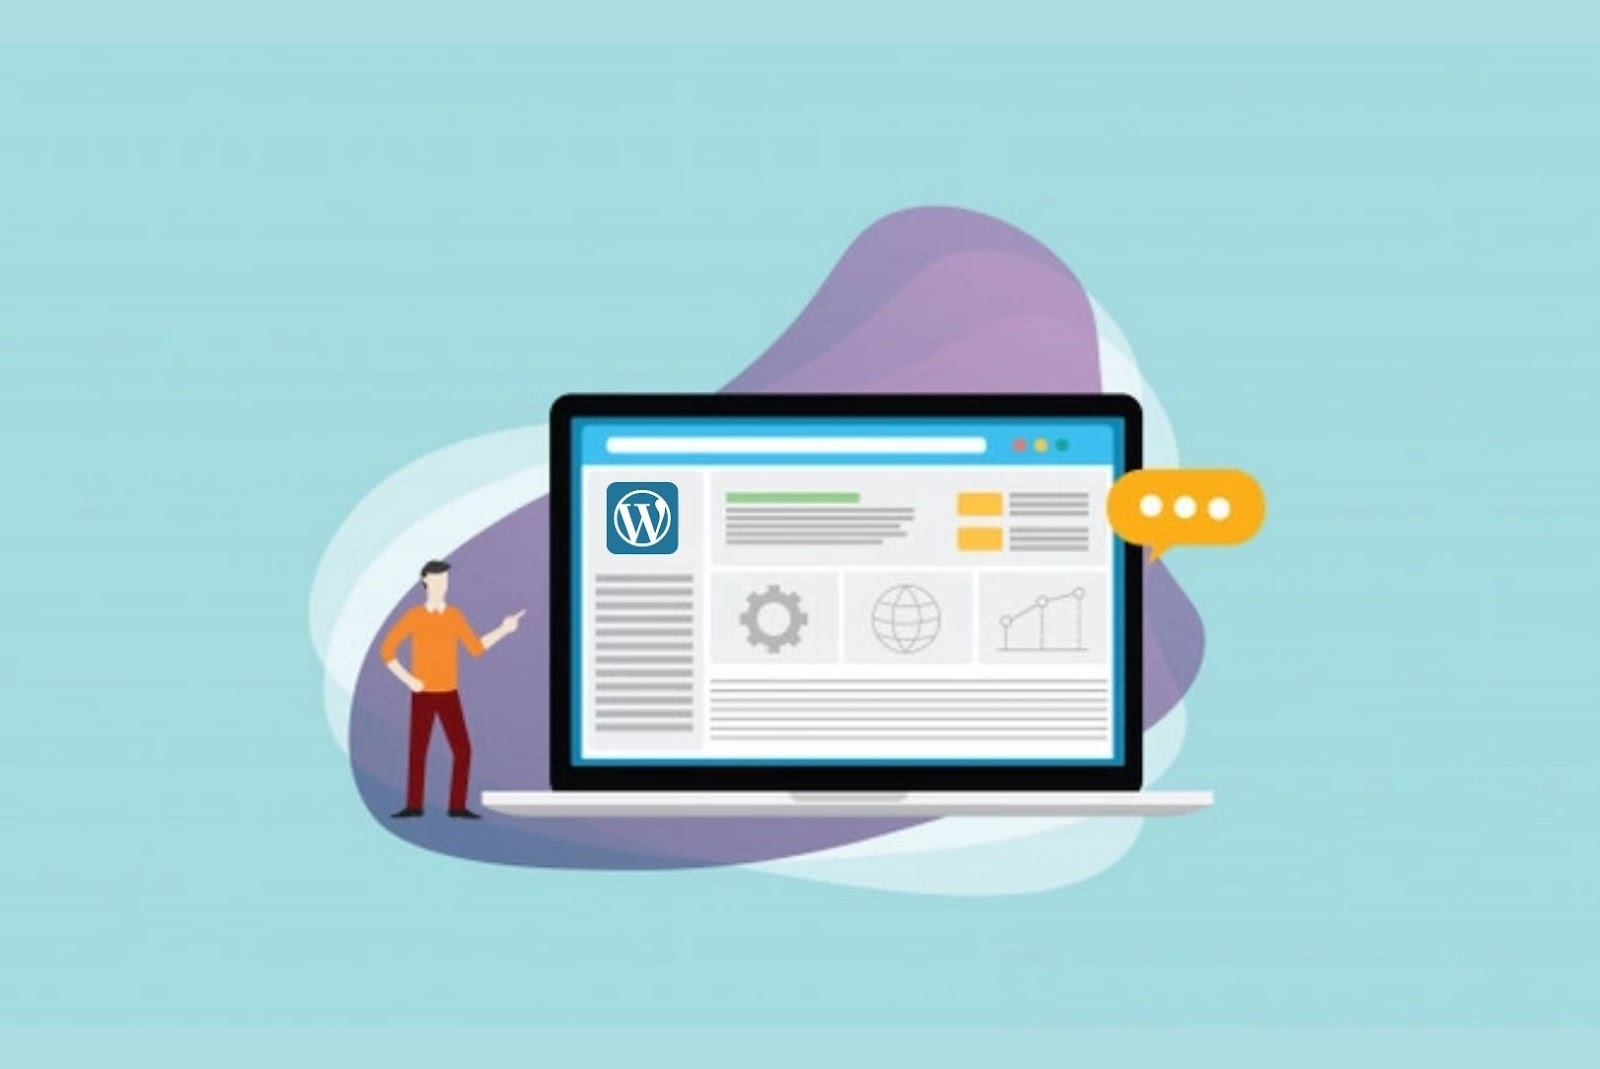 Wordpress for content management system